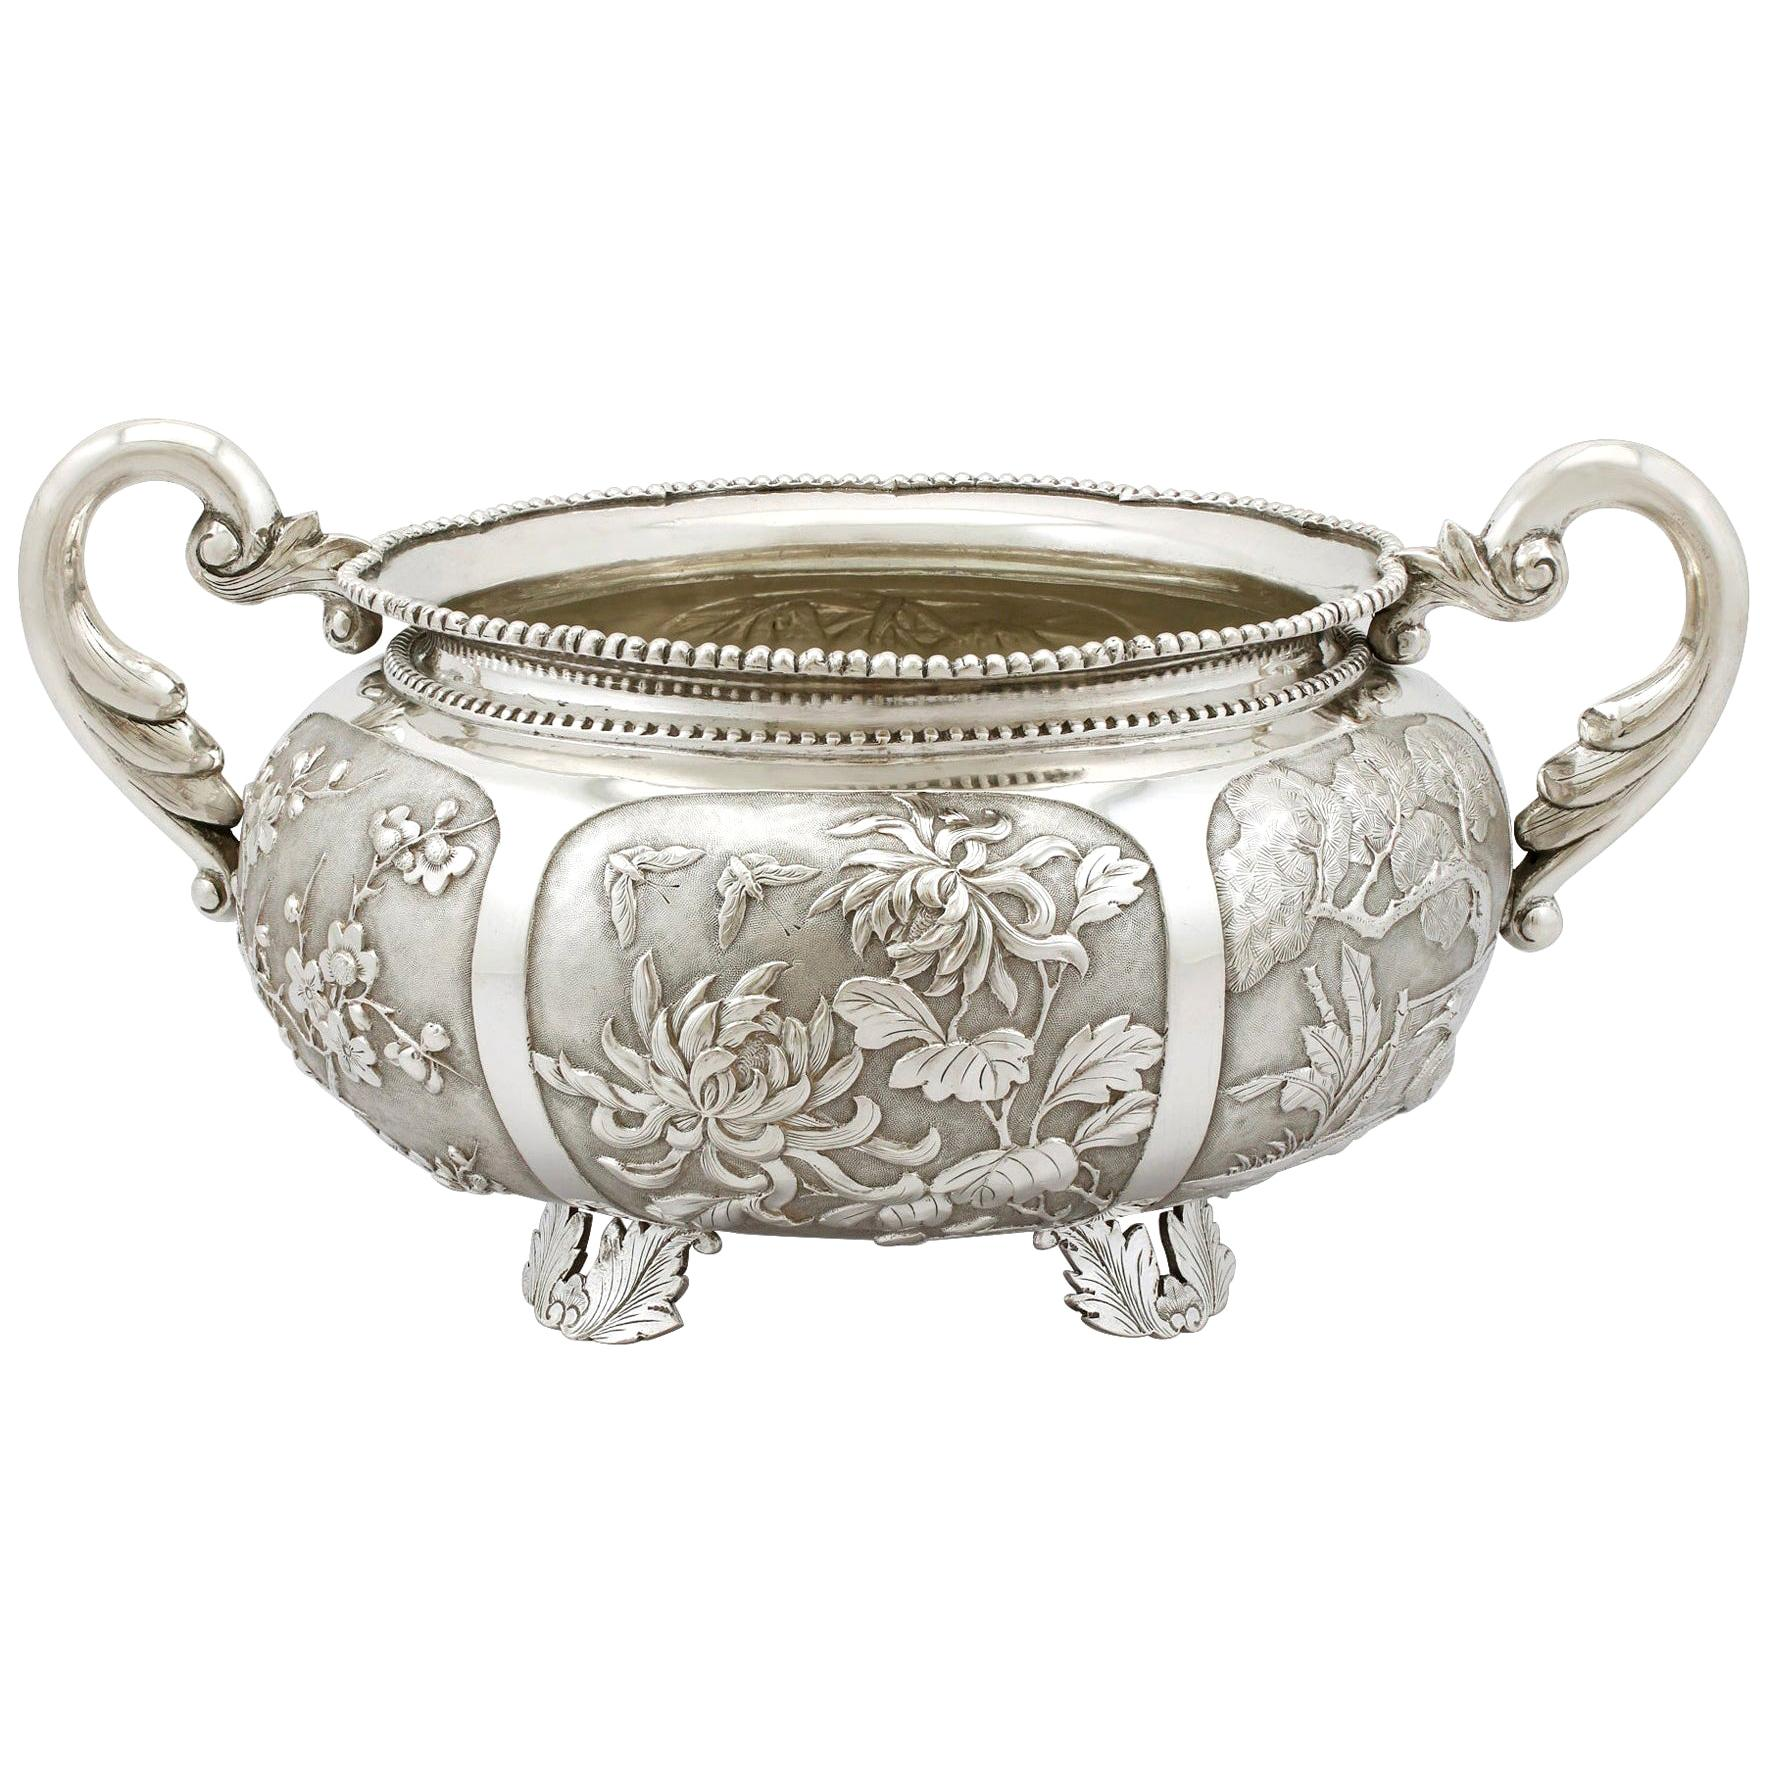 1890s Antique Chinese Export Silver Bowl